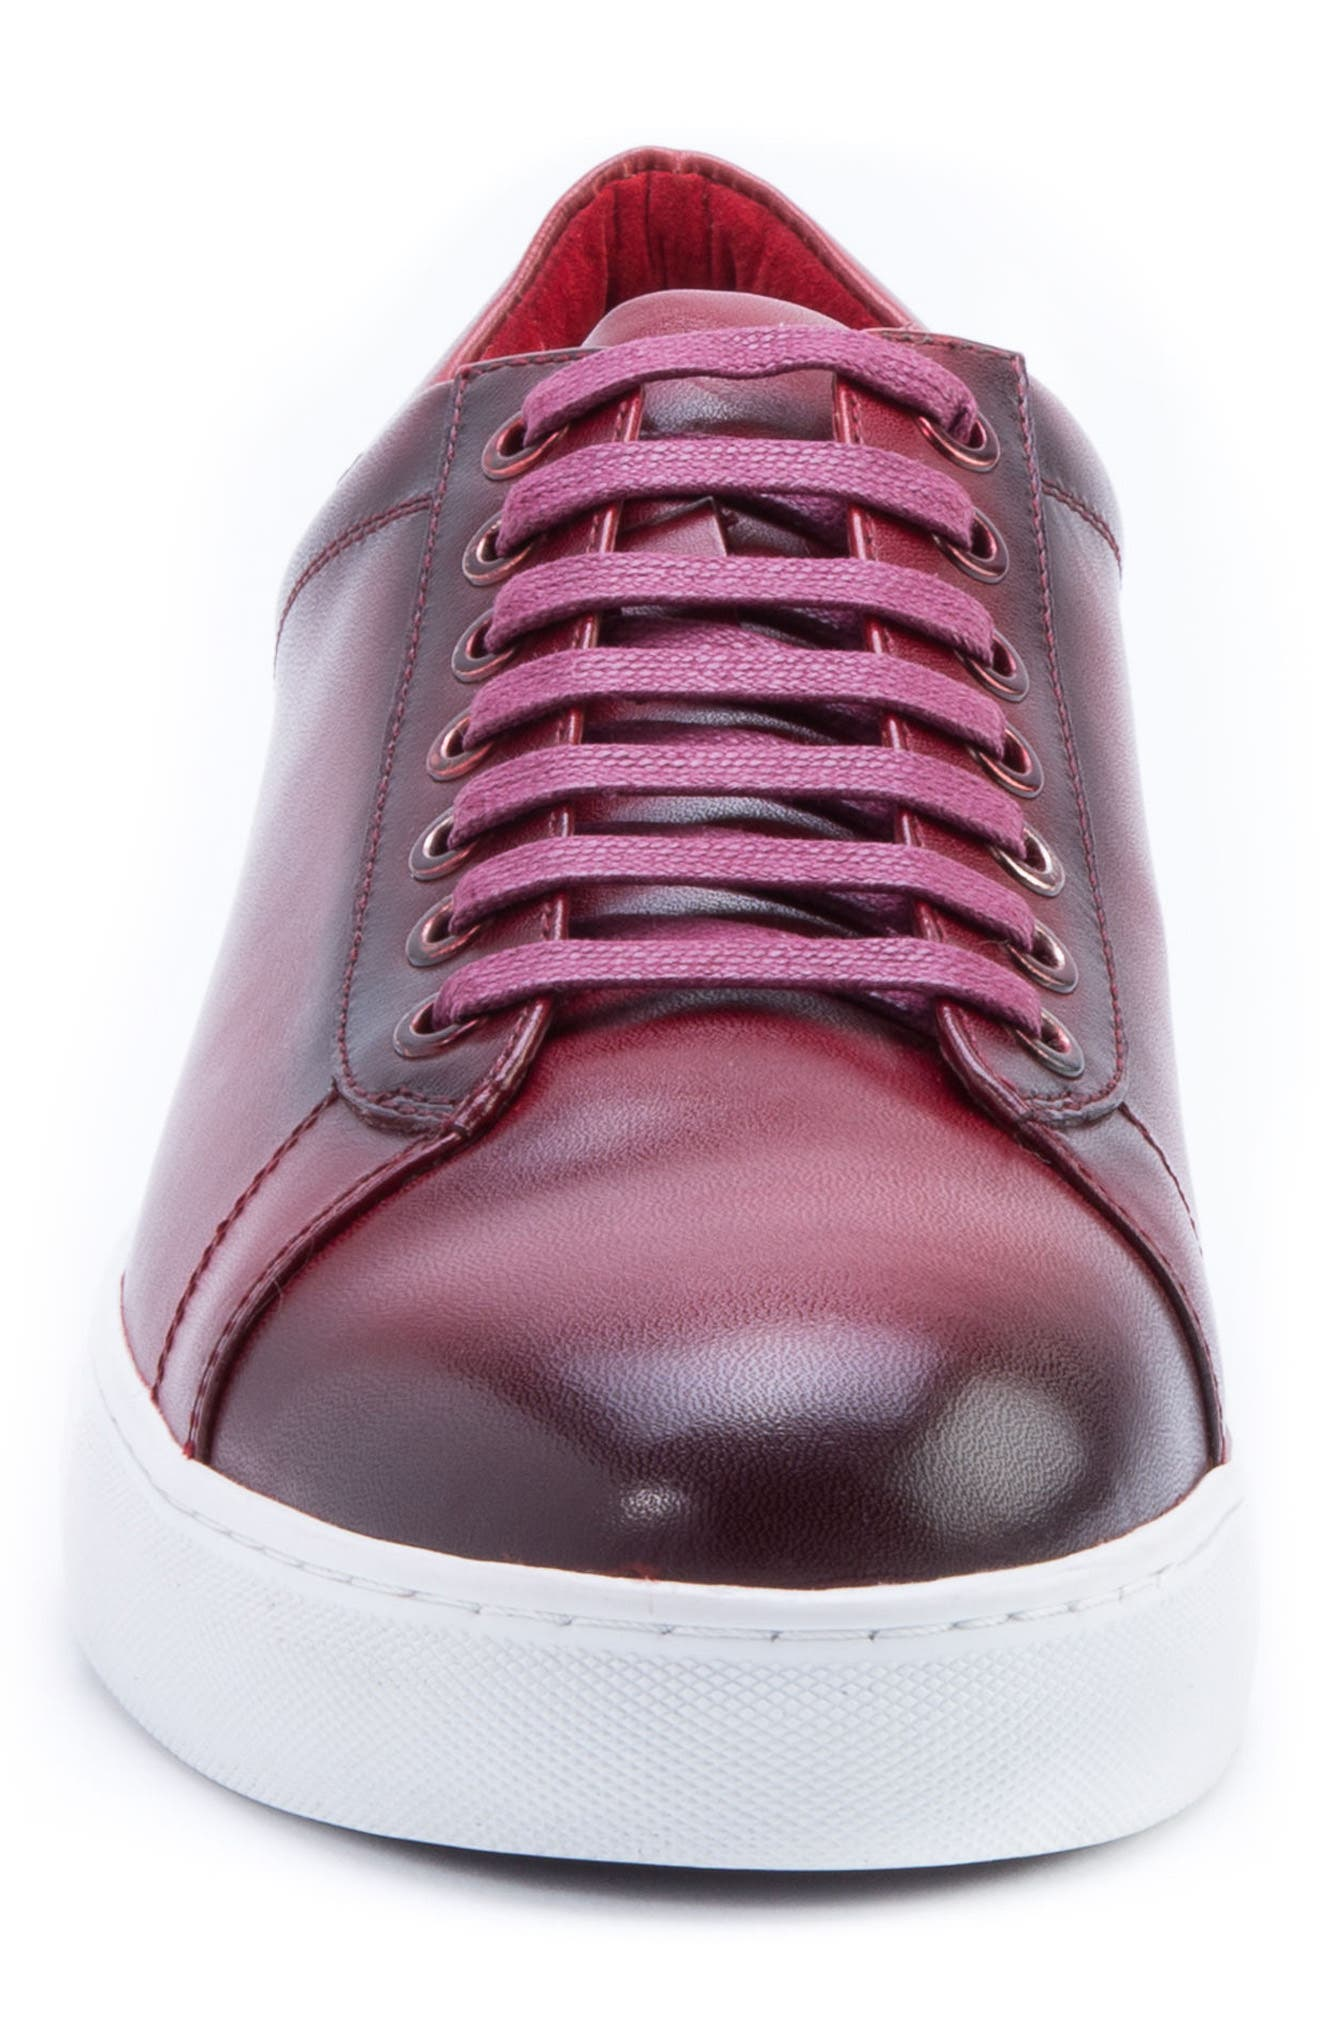 Music Low Top Sneaker,                             Alternate thumbnail 4, color,                             Red Leather